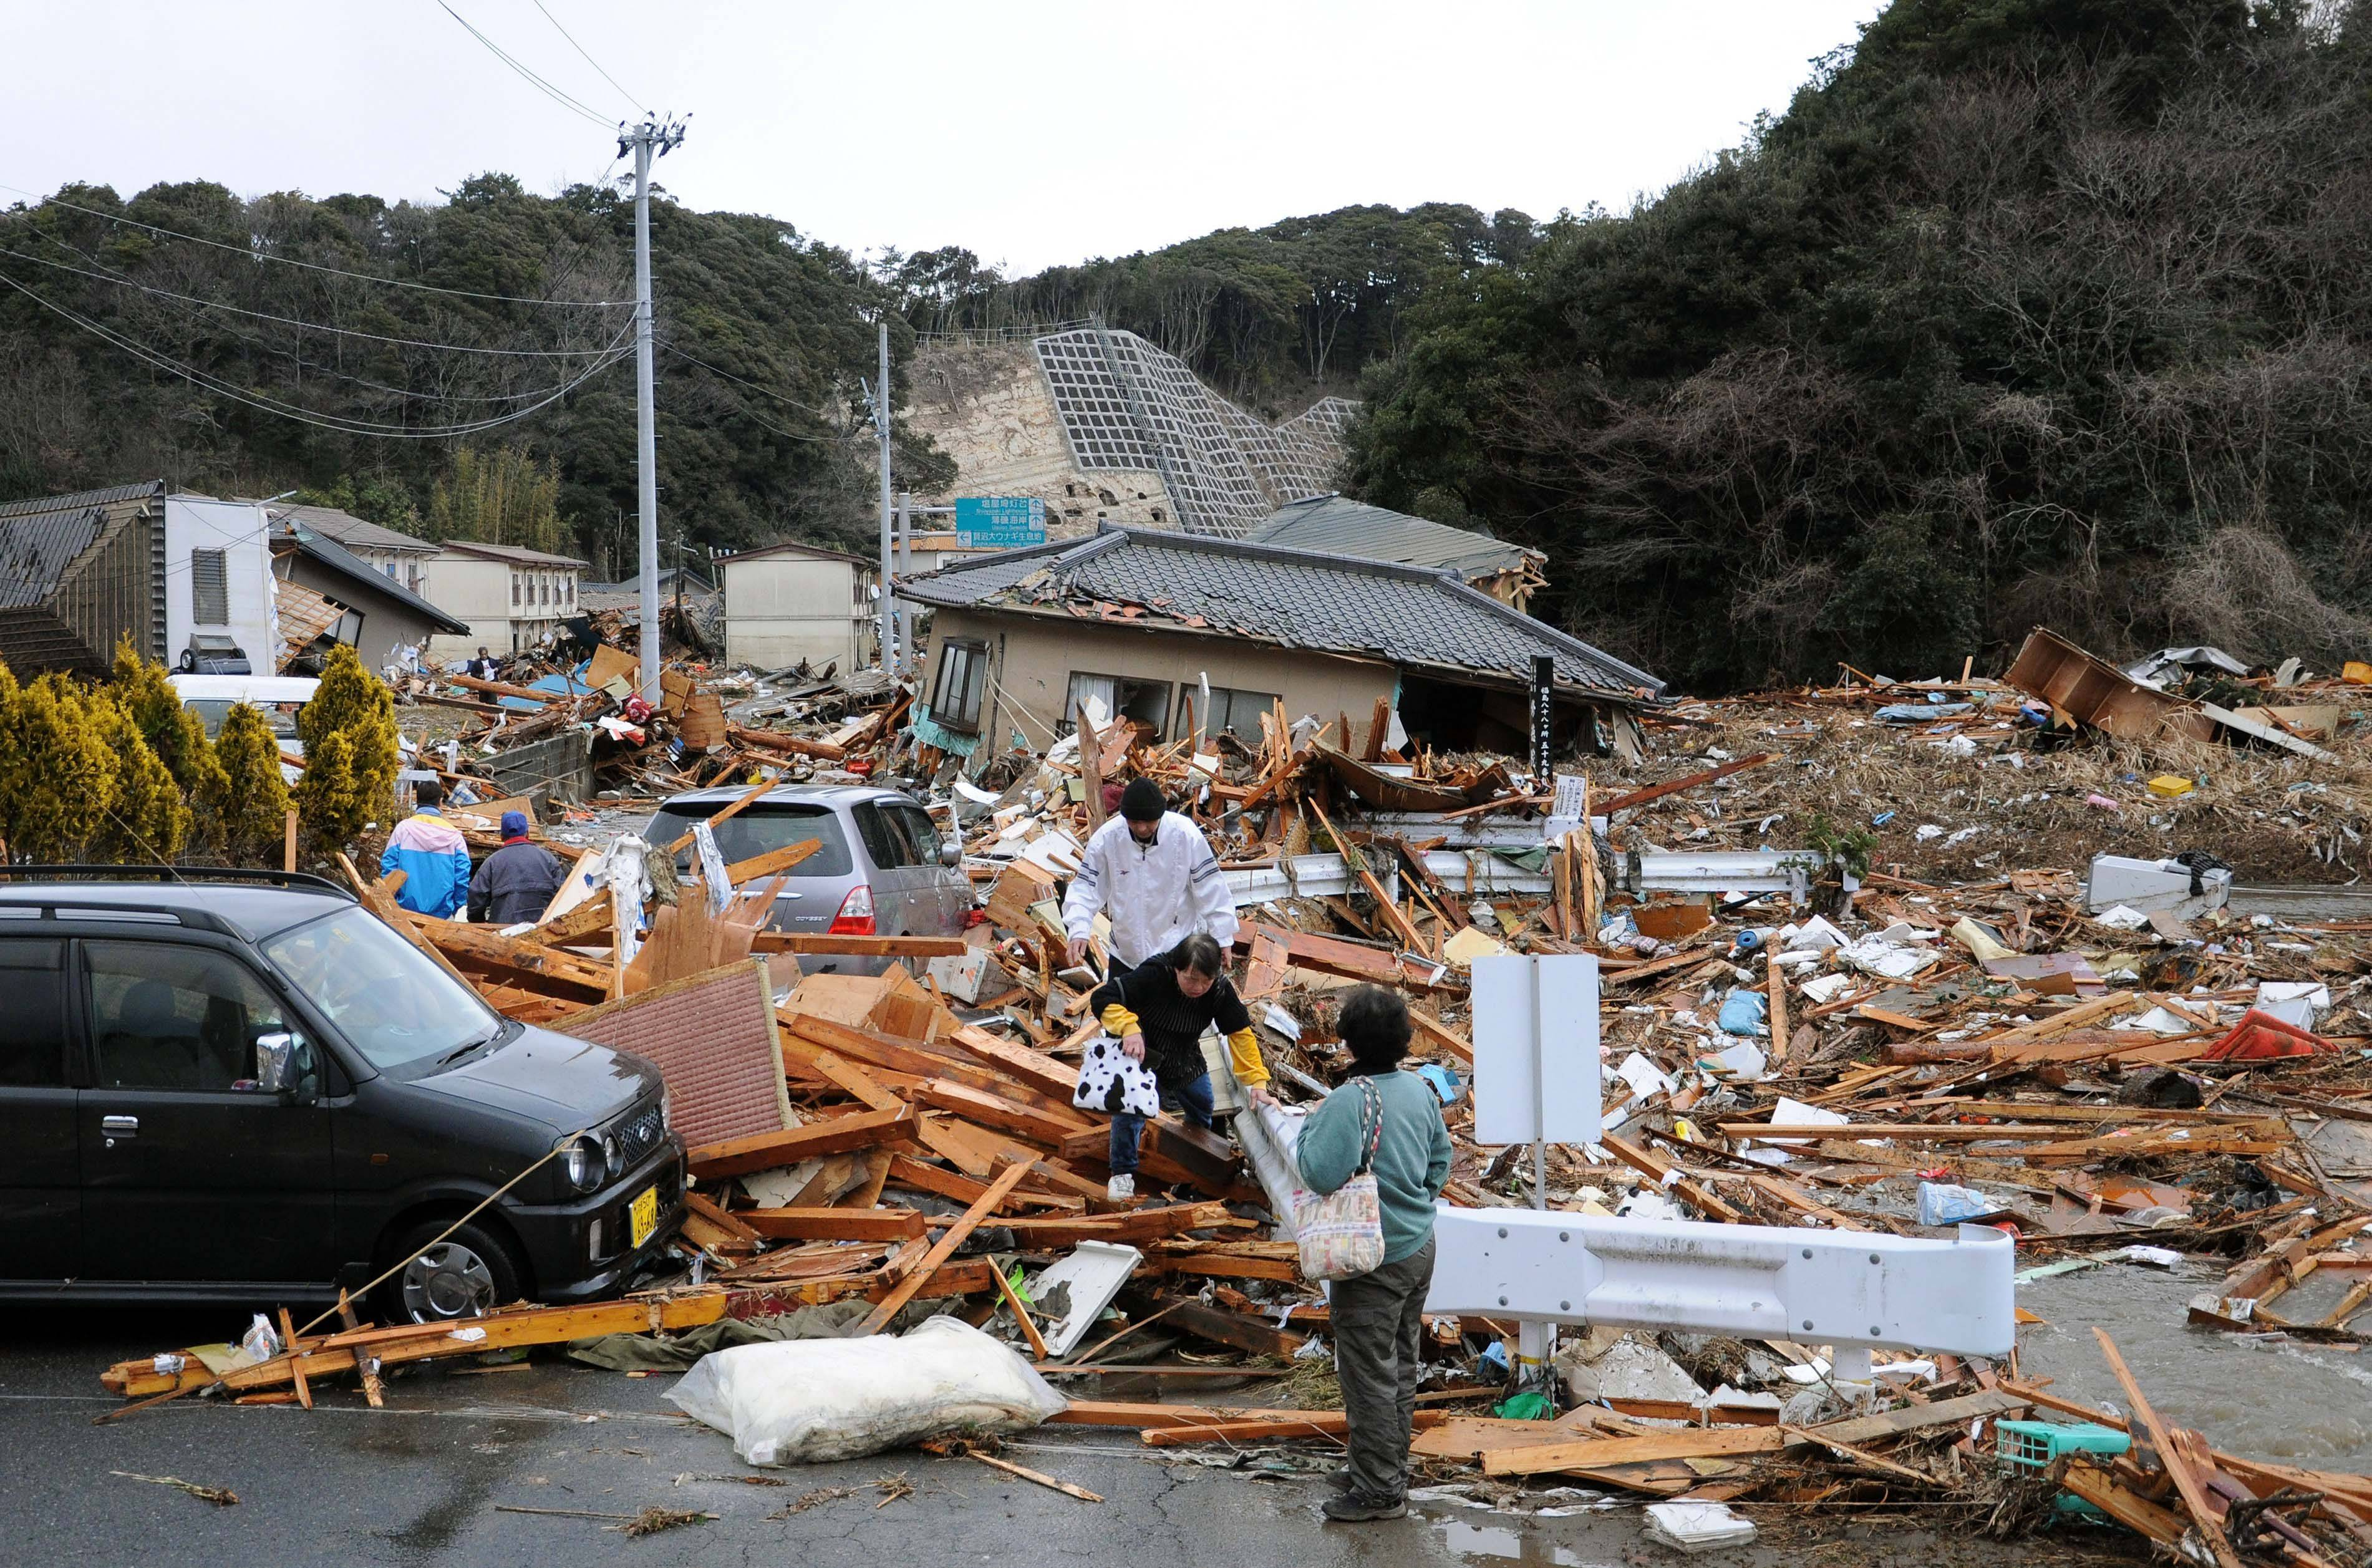 Residents walk through the rubles of residents collapsed by a powerful earthquake in Iwaki, Fukushima prefecture (state), Japan, Friday.